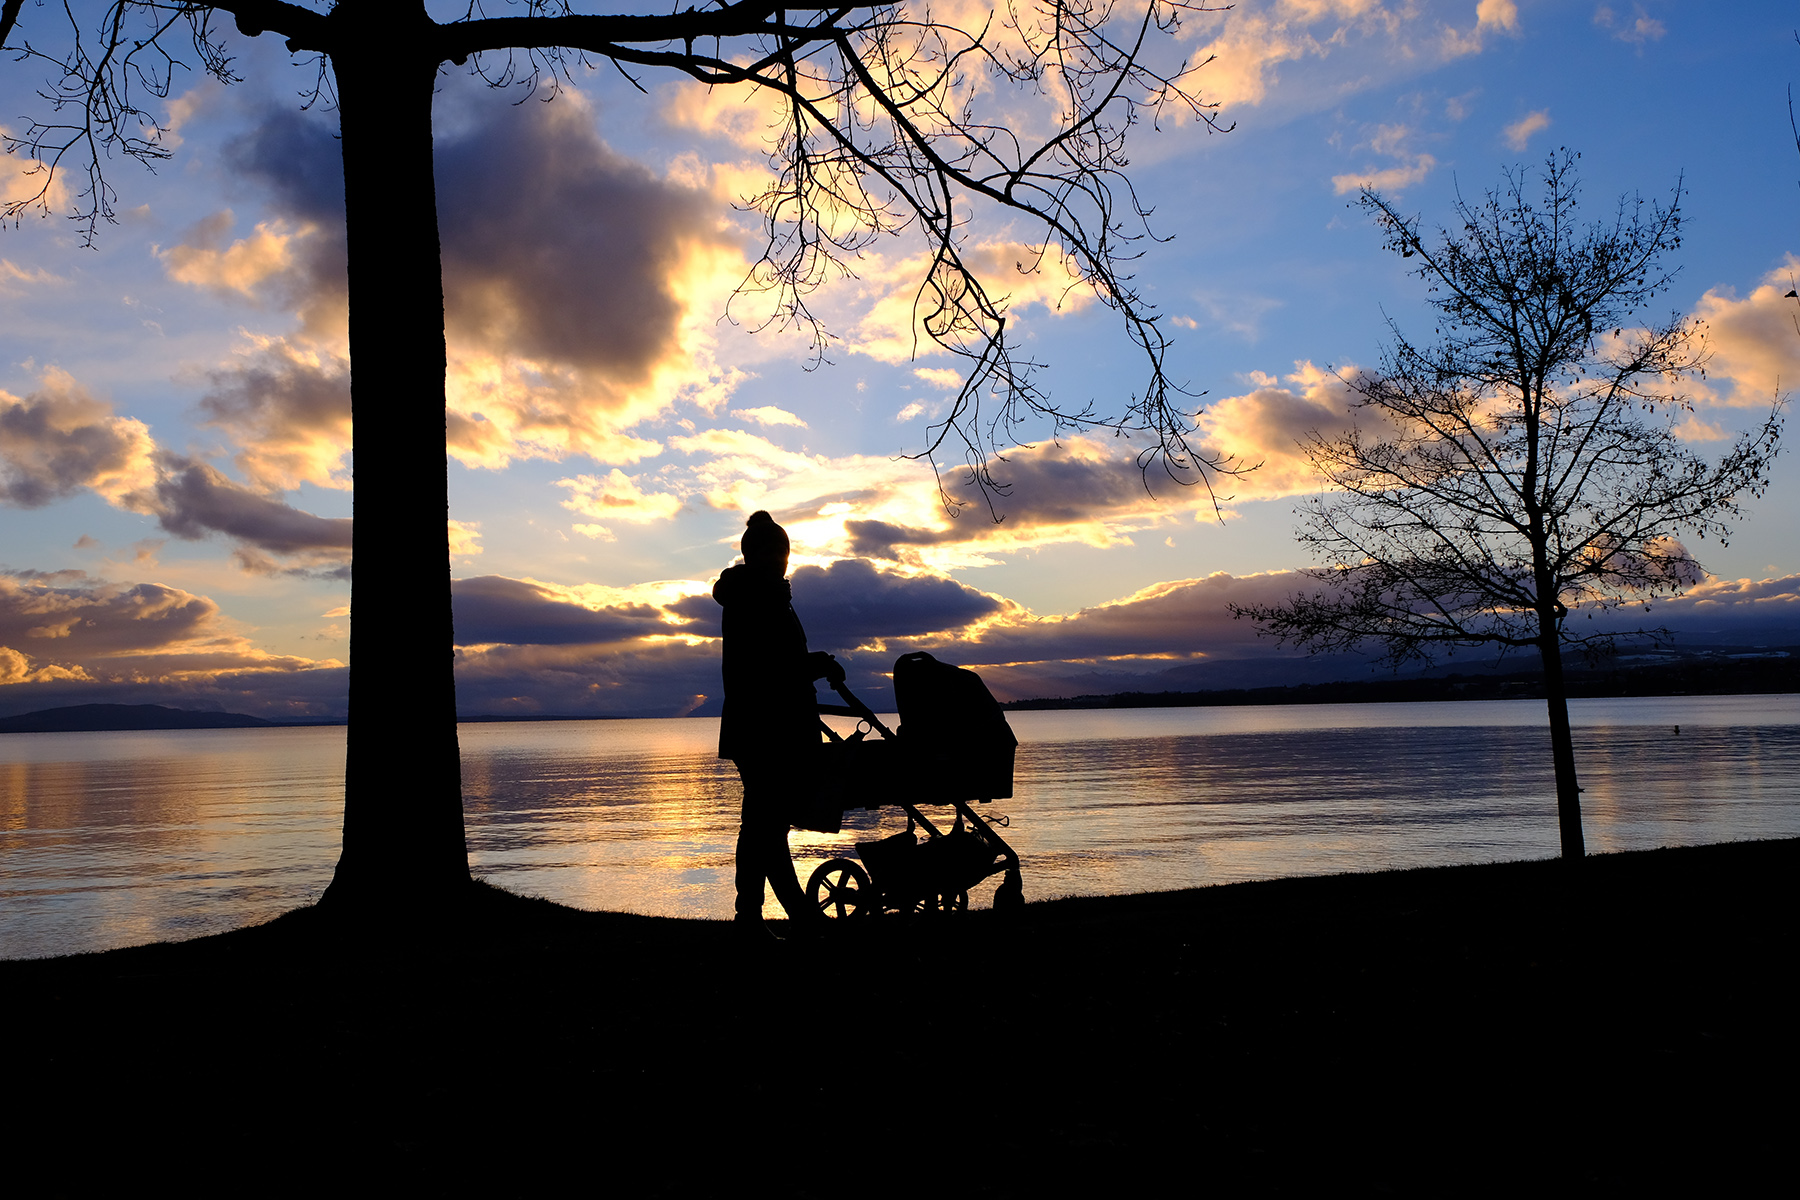 A mother with a baby stroller walking along Lake Geneva